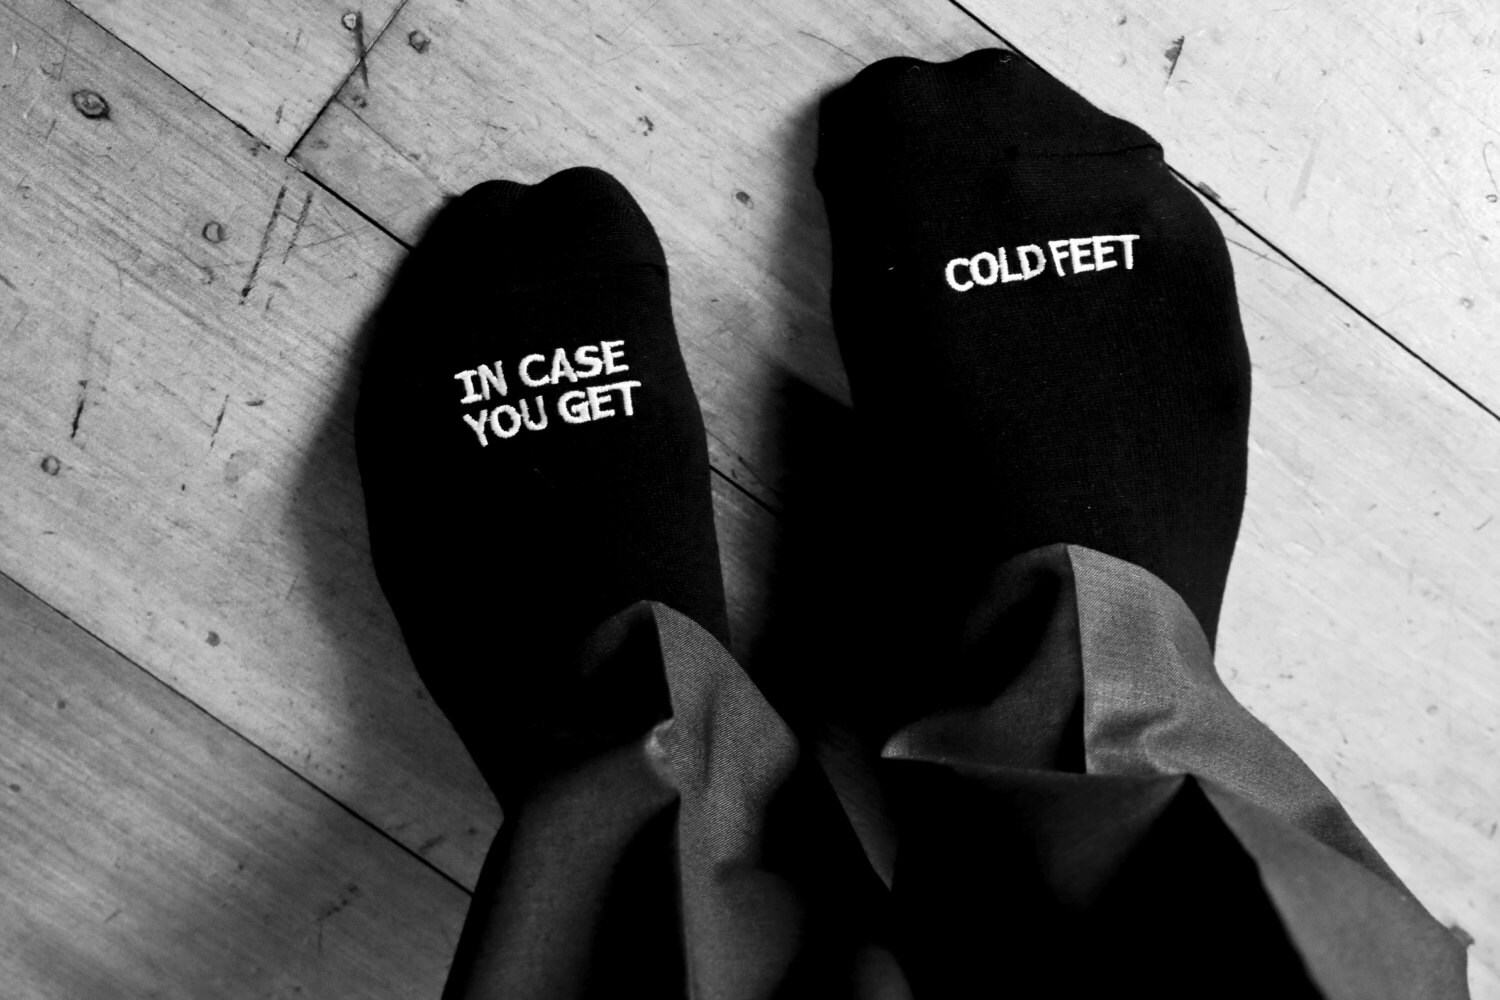 Cold feet while dating